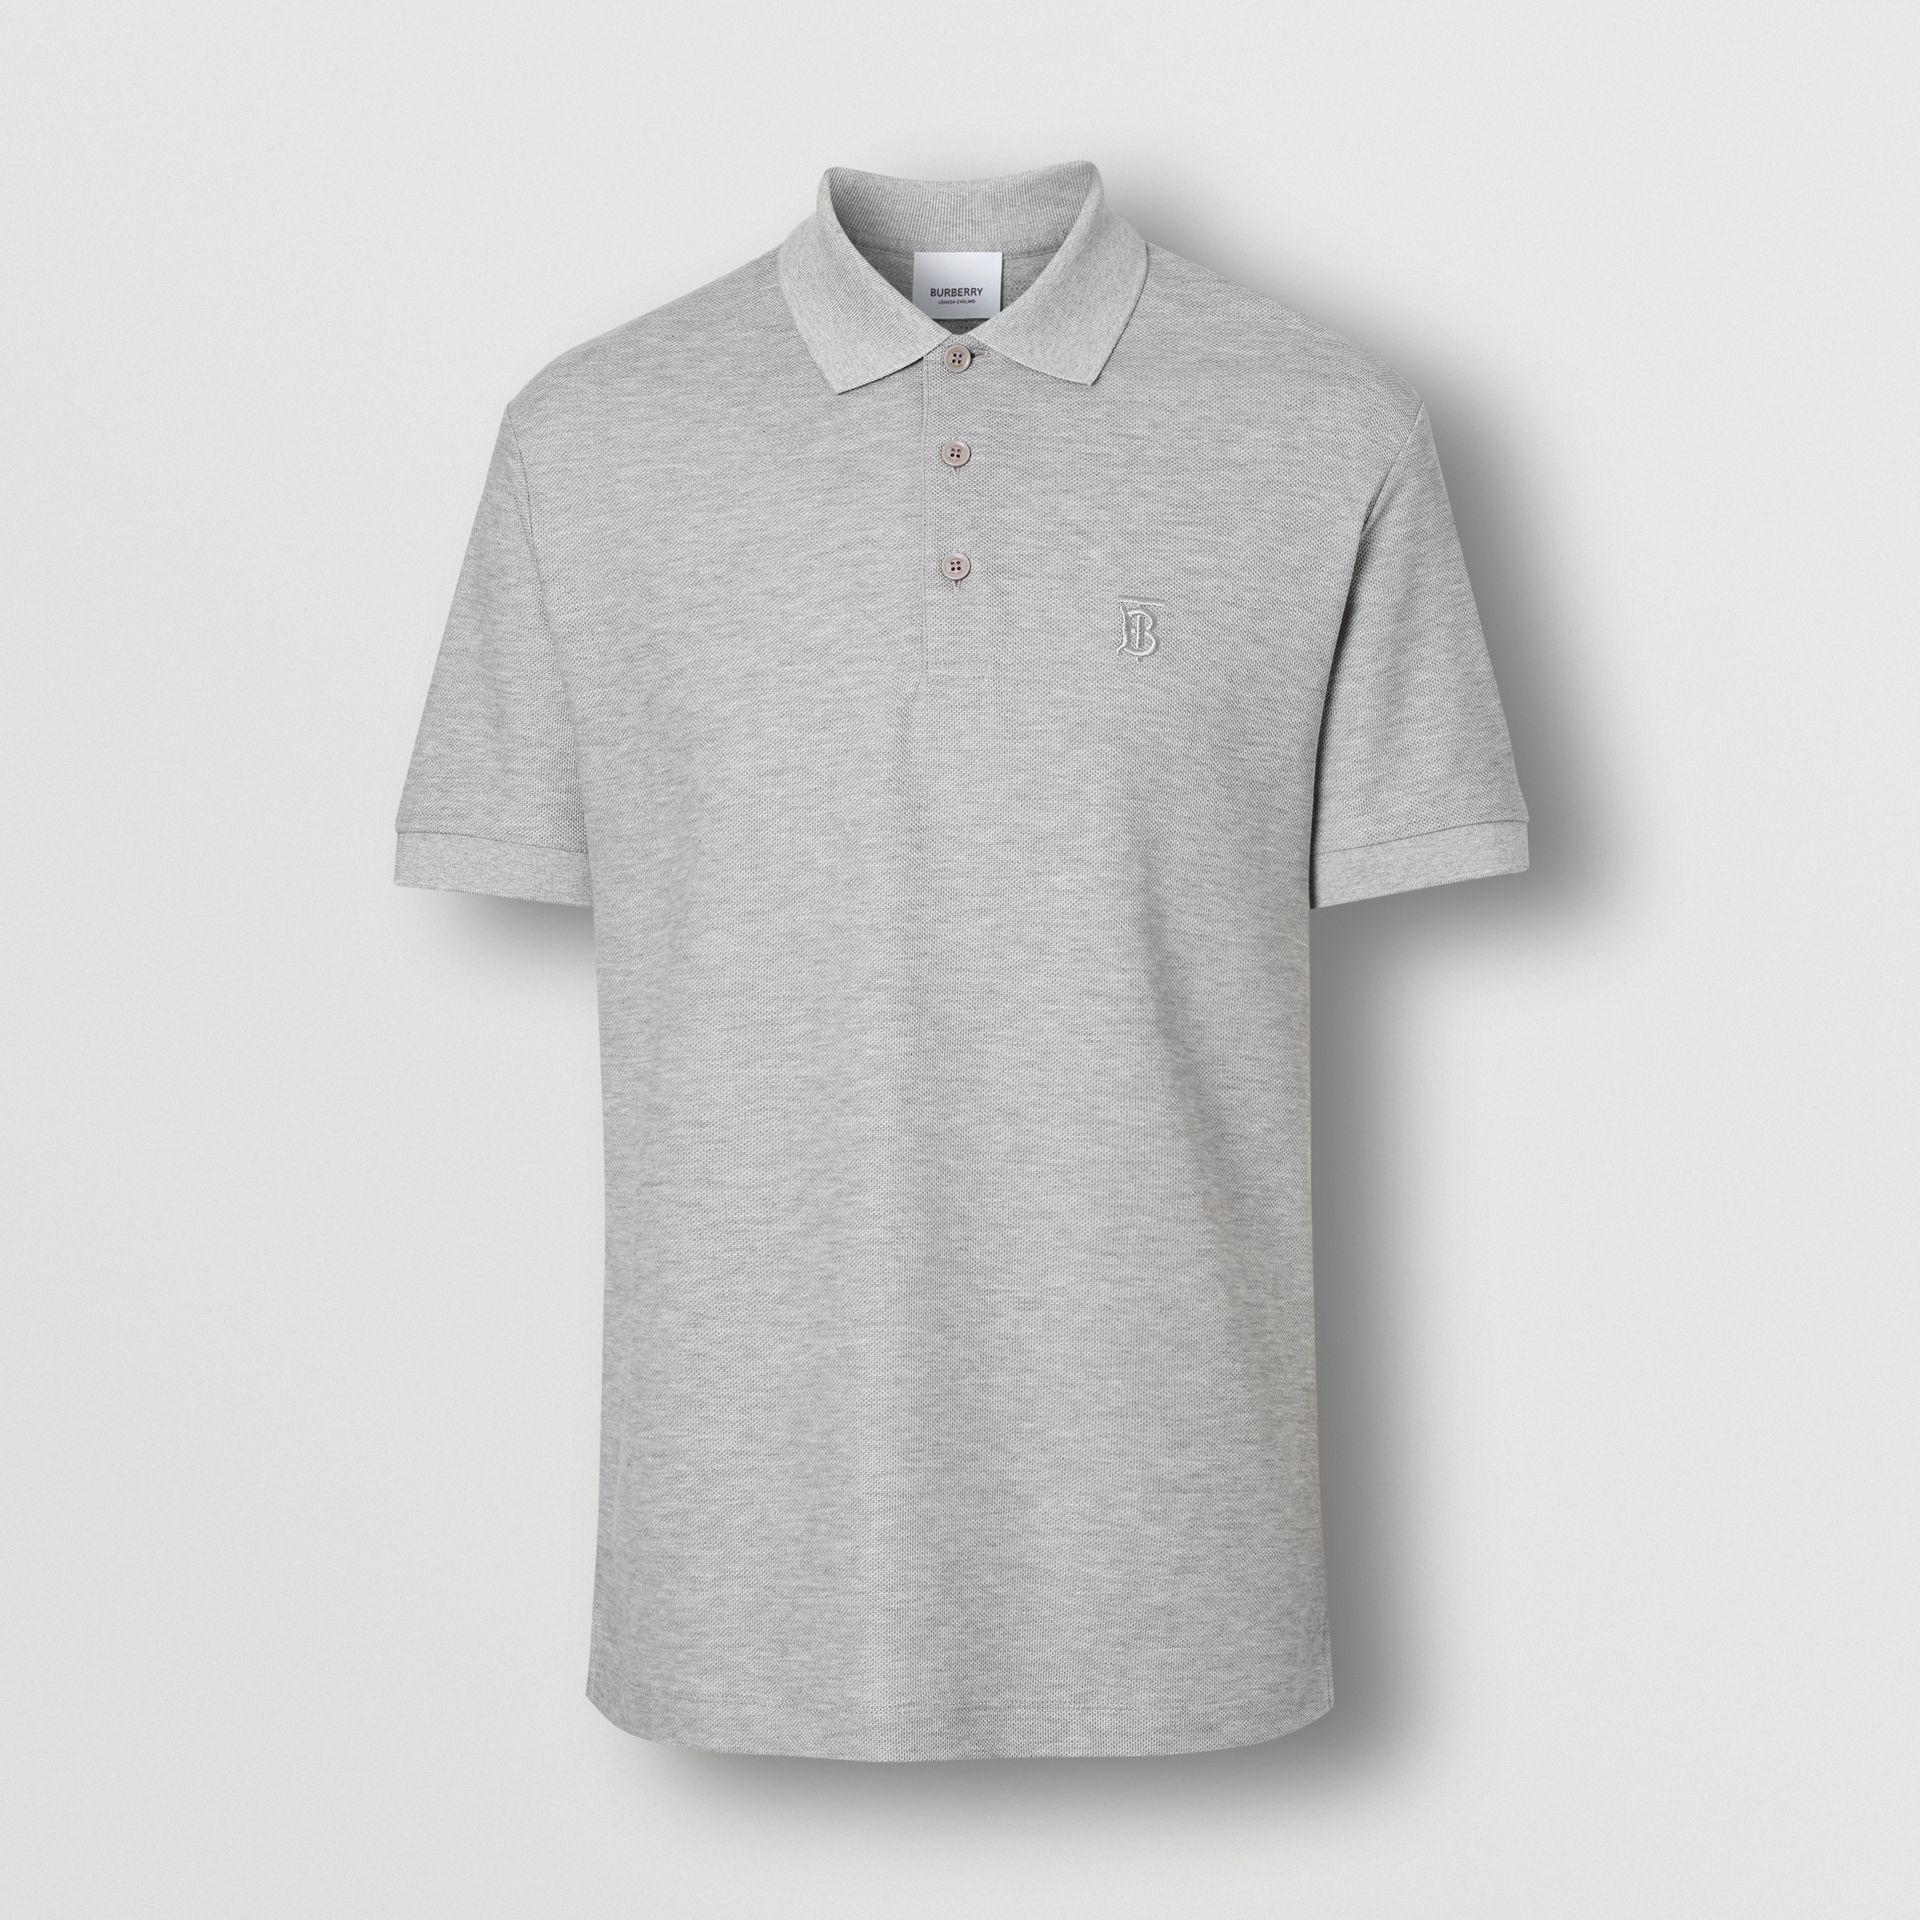 Monogram Motif Cotton Piqué Polo Shirt in Pale Grey Melange - Men | Burberry Australia - gallery image 3